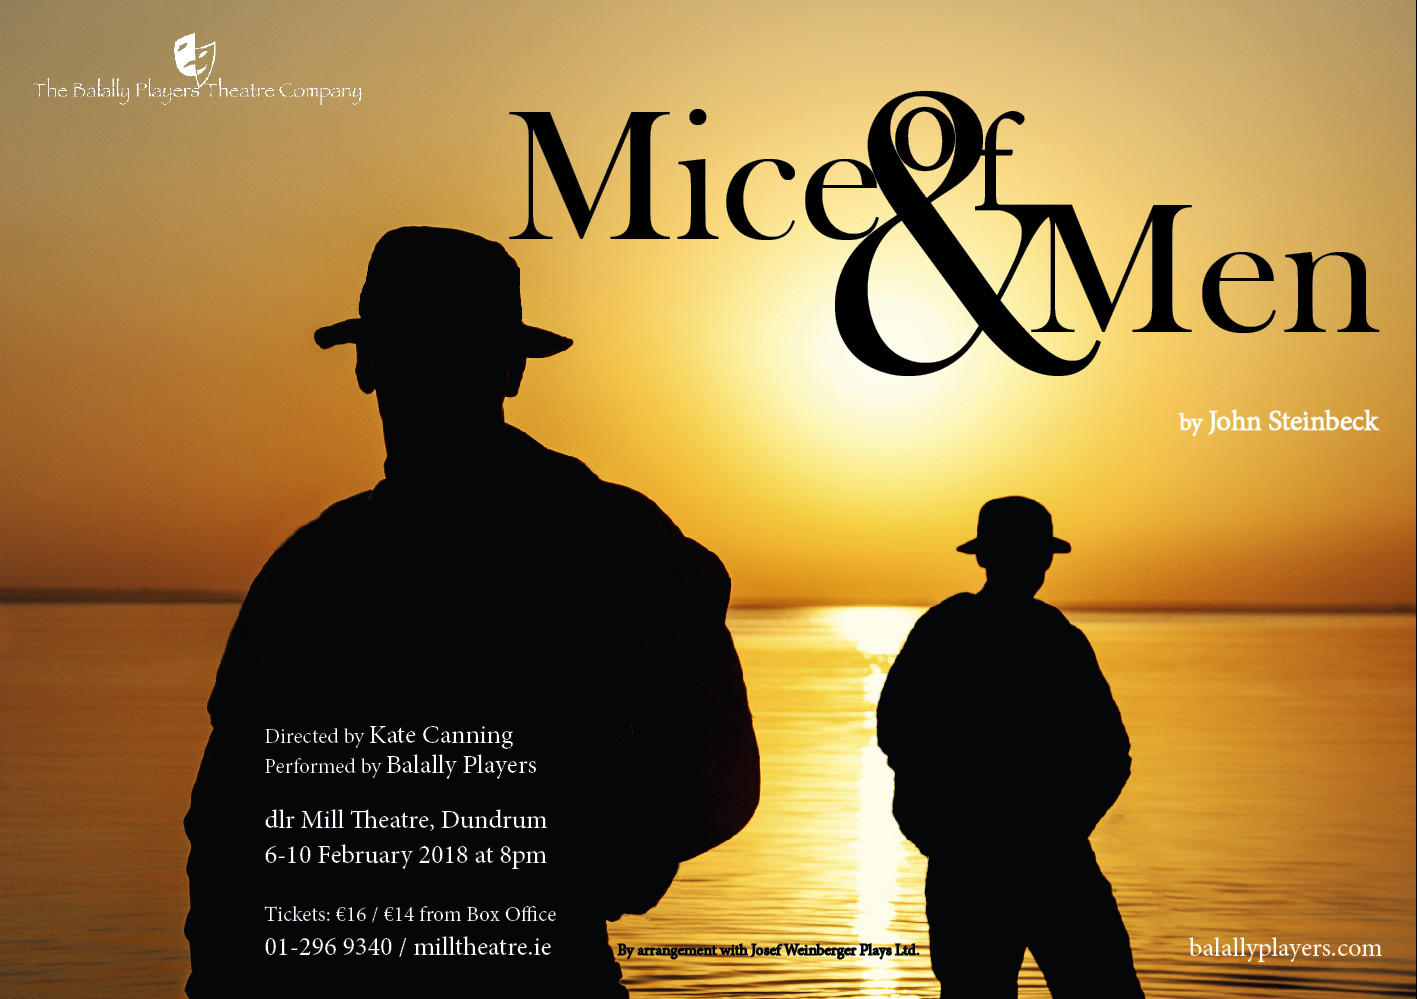 Of Mice and Men - dlr Mill Theatre Dundrum South Dublin